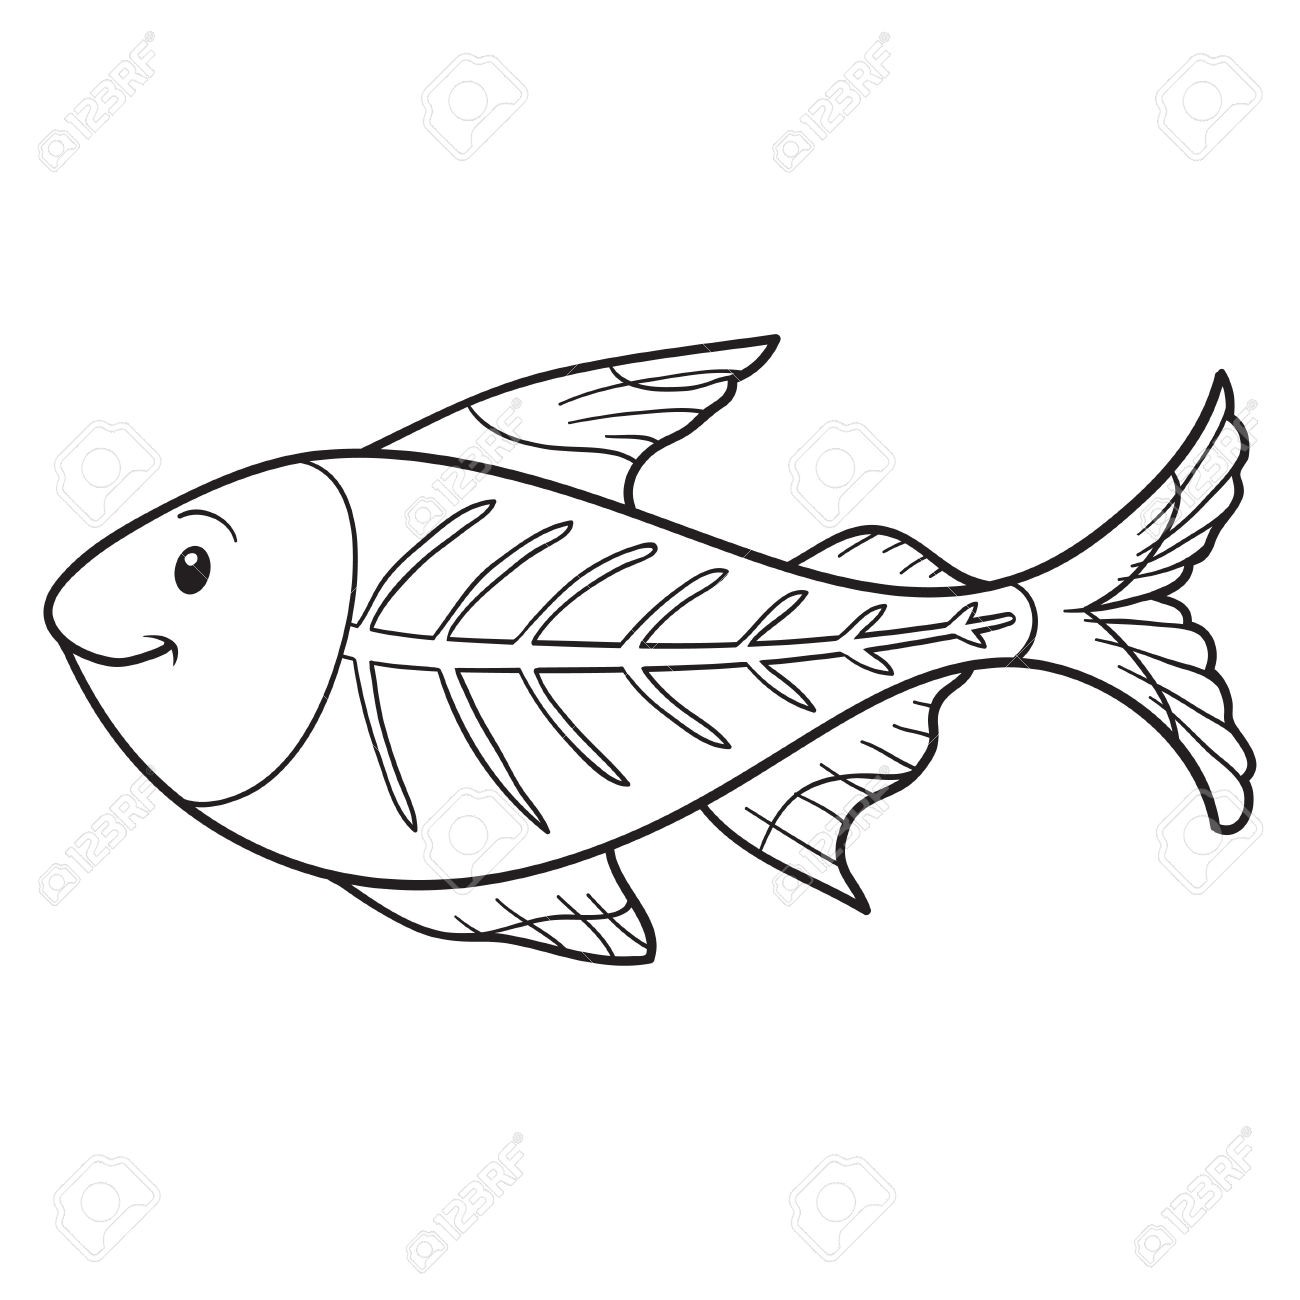 1300x1300 X Ray Fish Coloring Page New X Ray Fish Coloring Page Depetta